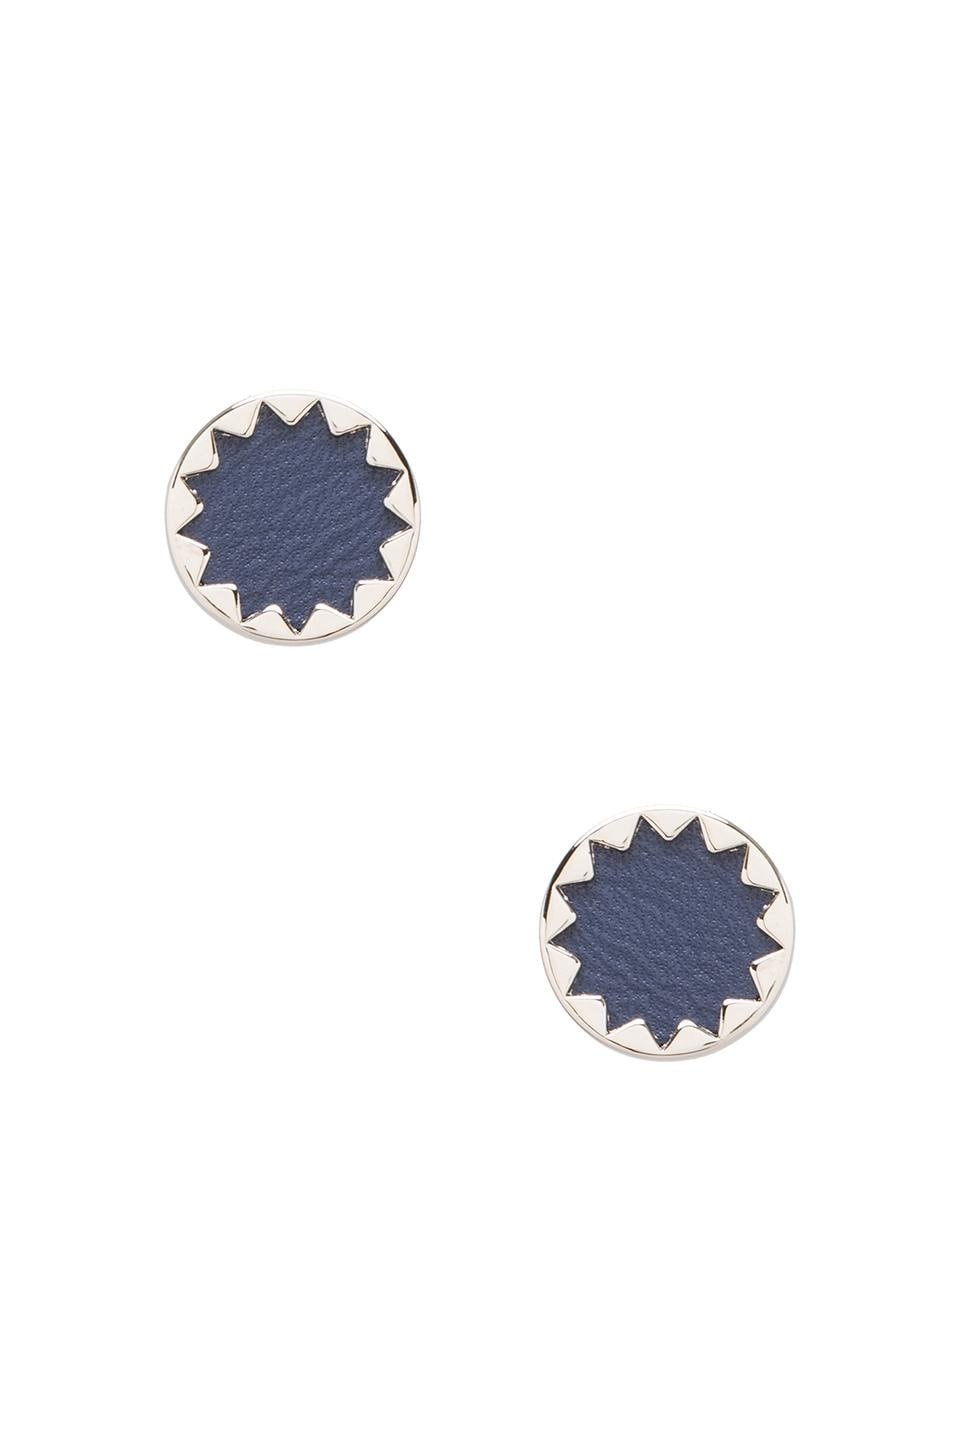 House of Harlow Sunburst Button Earrings Leather in Silver Tone Navy